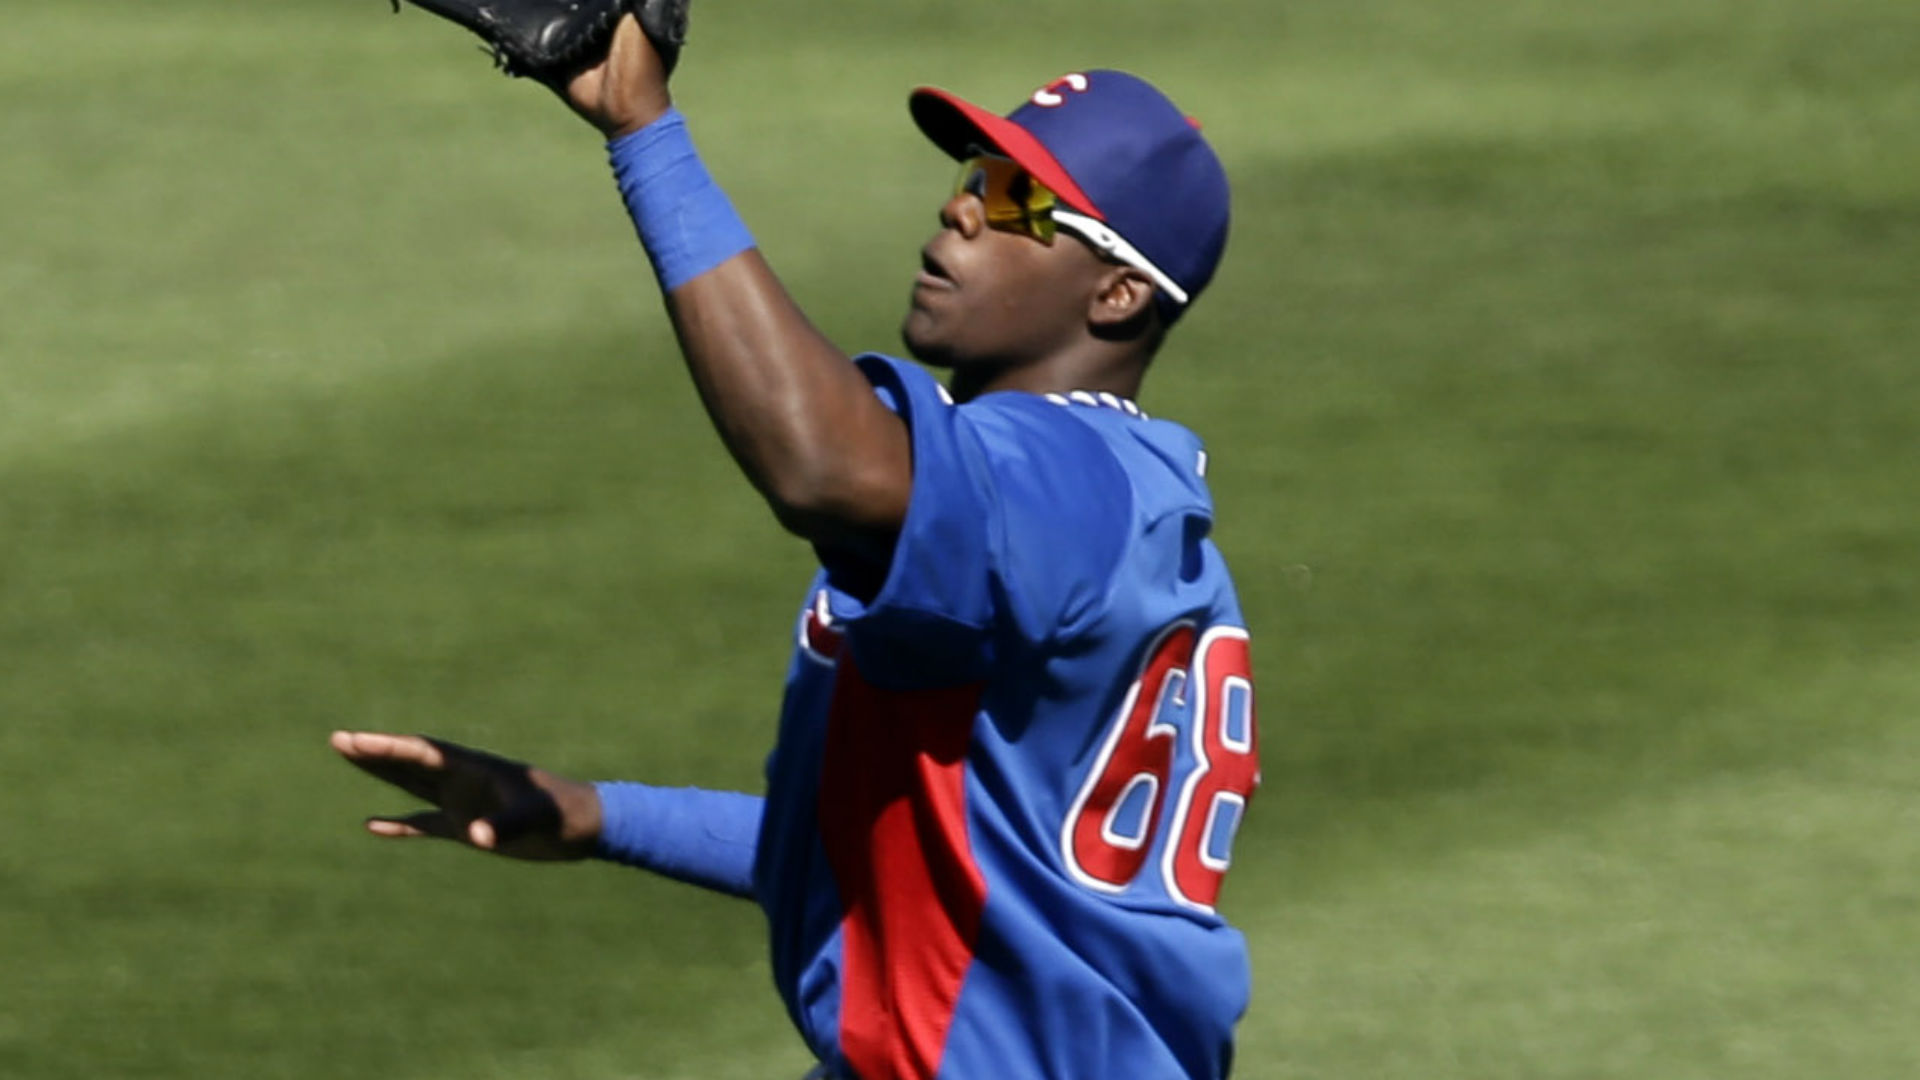 Jorge Soler receives promotion, ready to contribute to fantasy owners